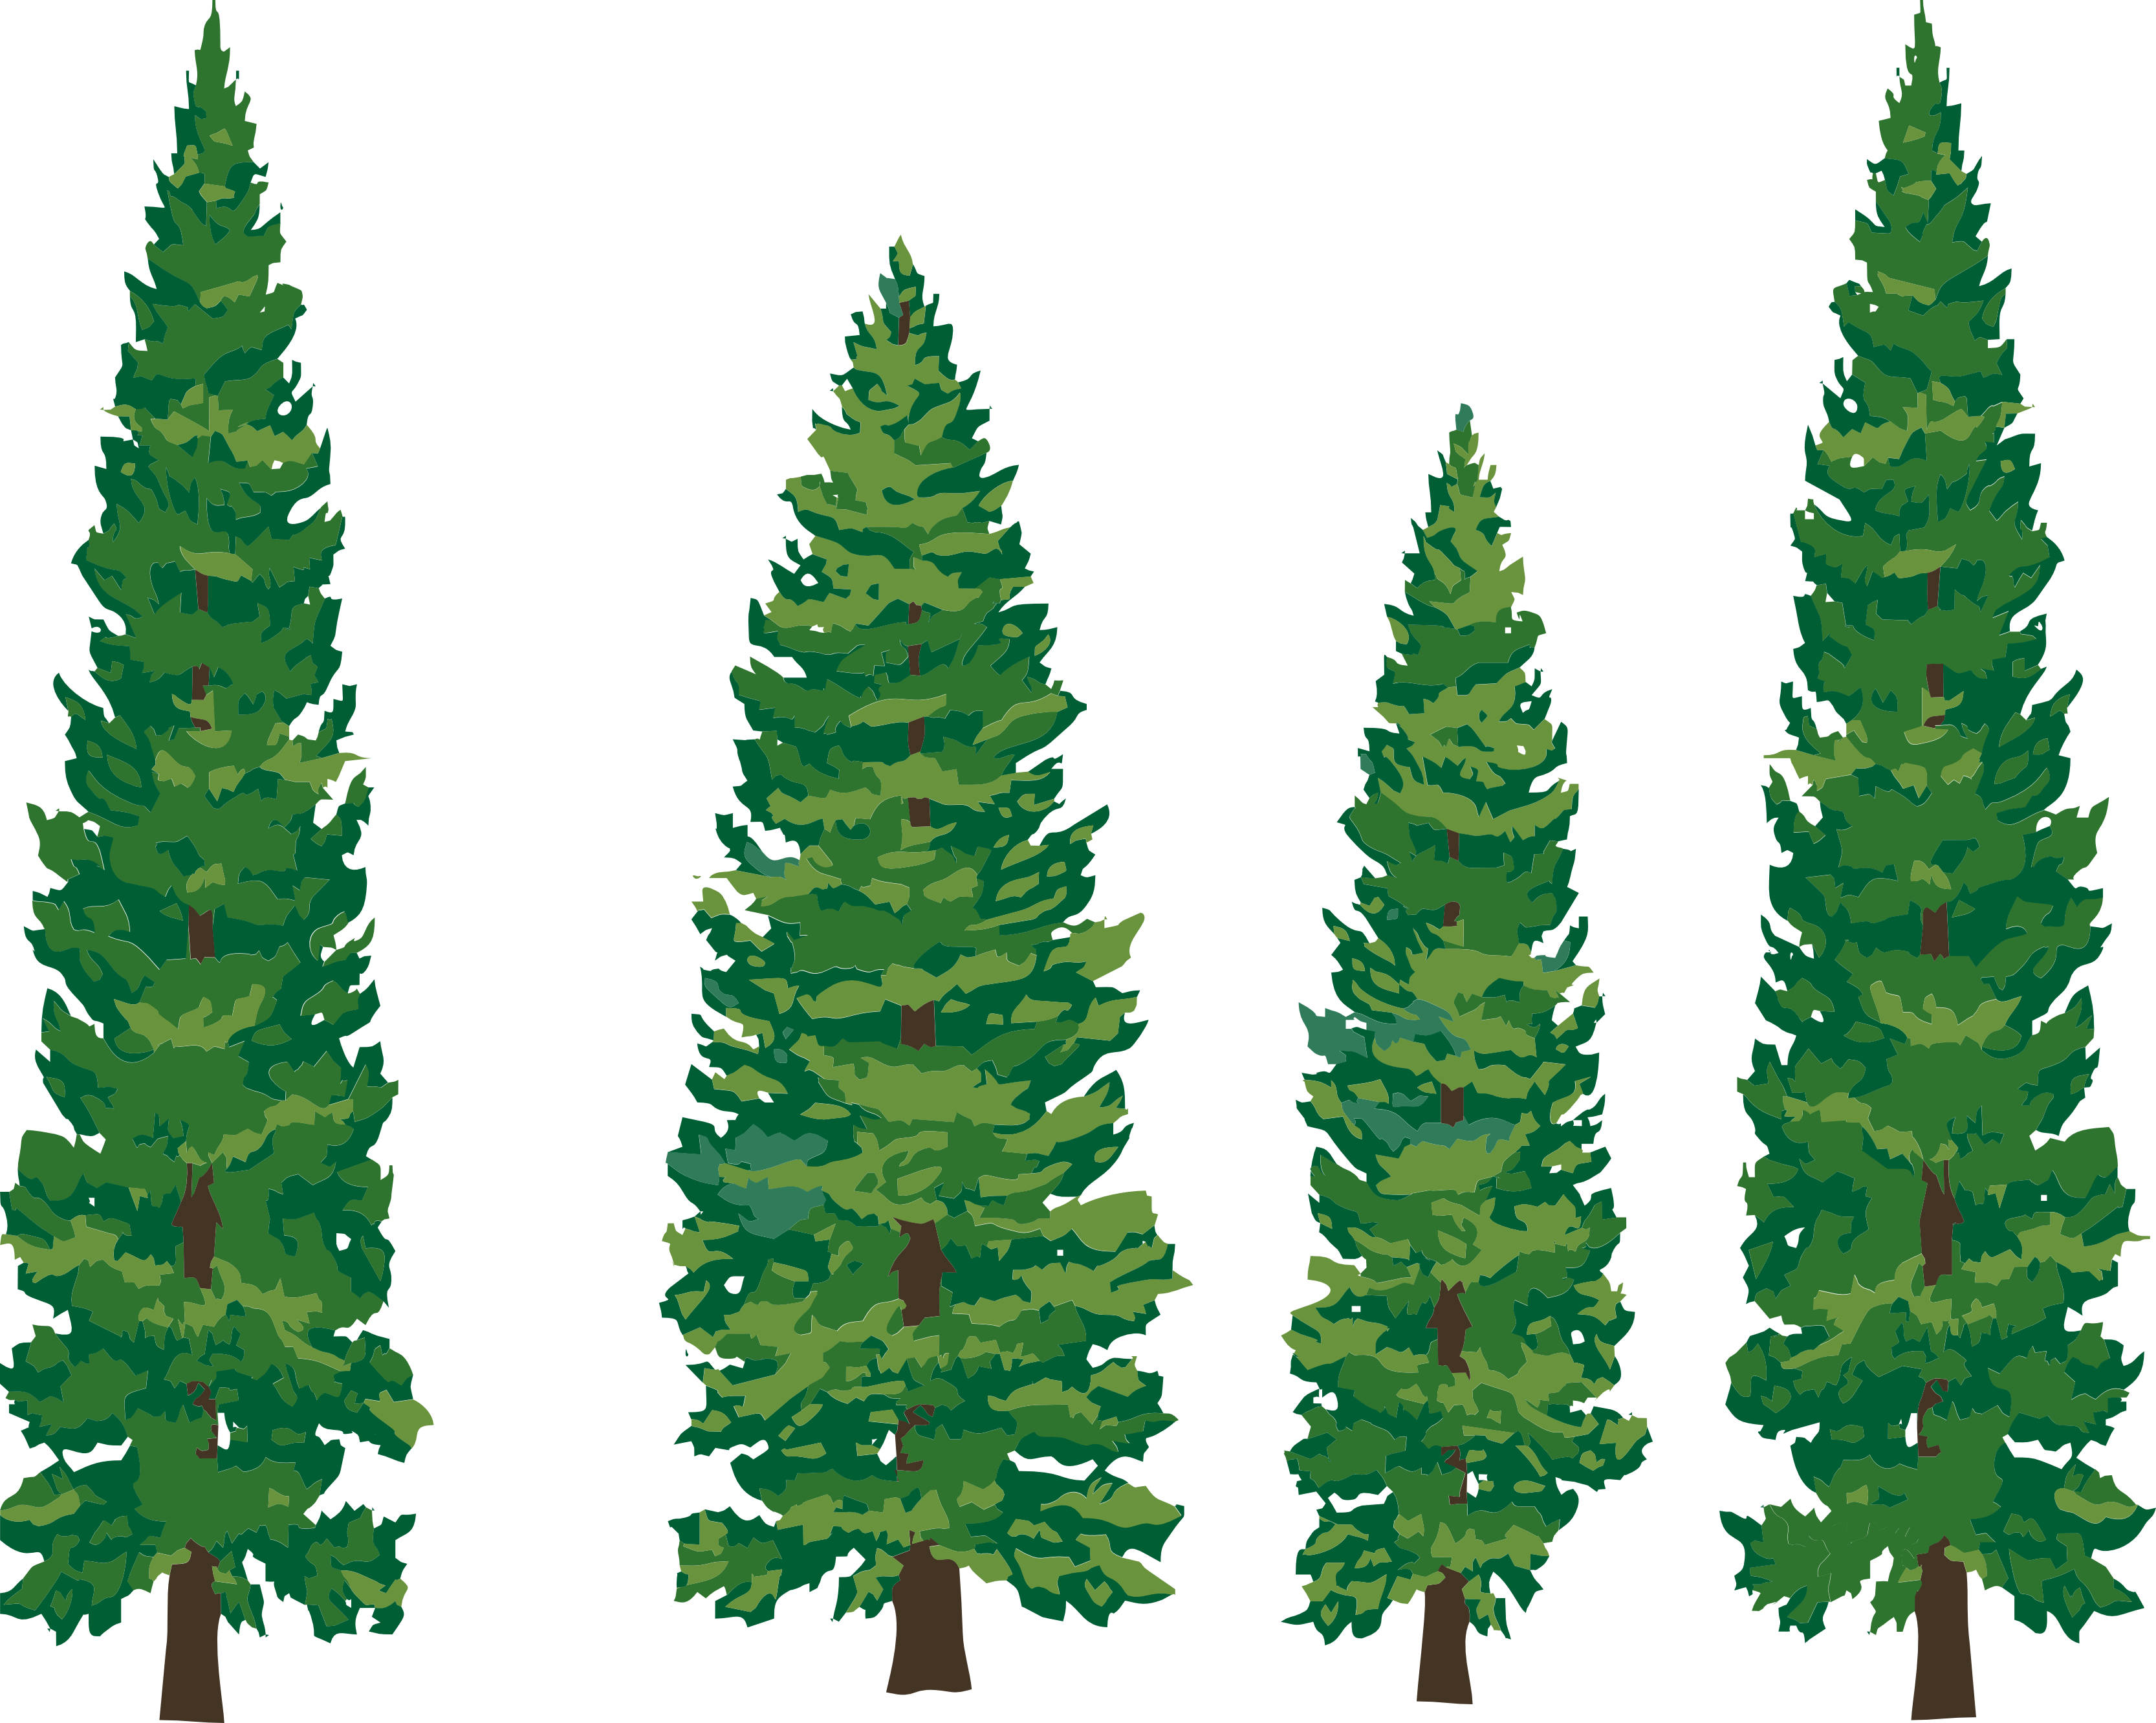 Pine Tree Images Clip Art - Clipart library